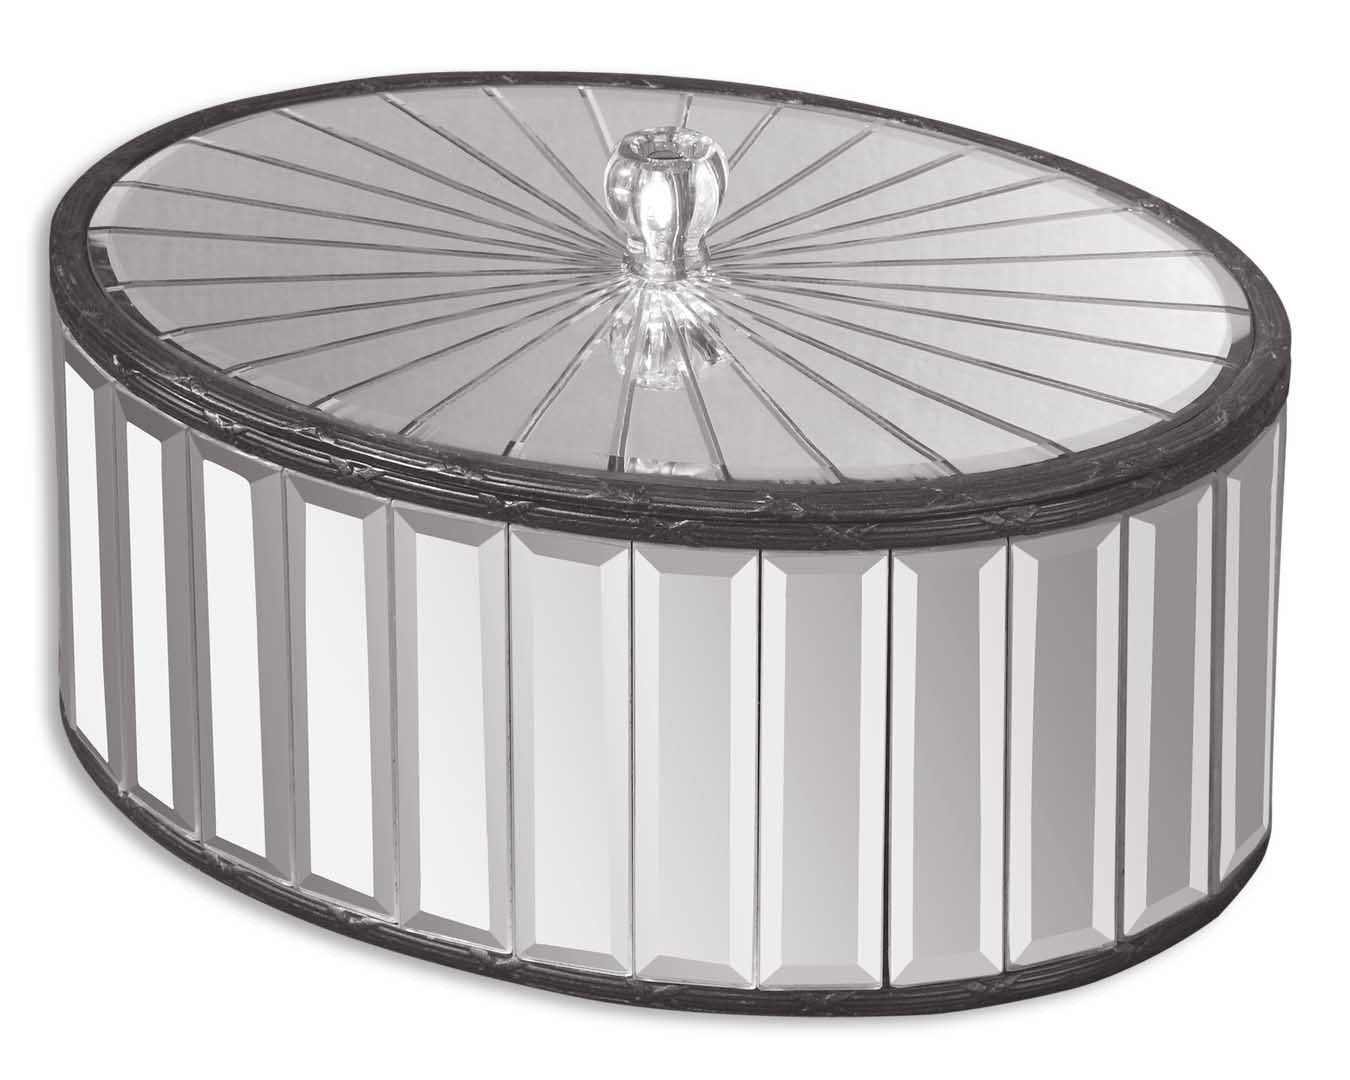 Oval box made of beveled mirrors